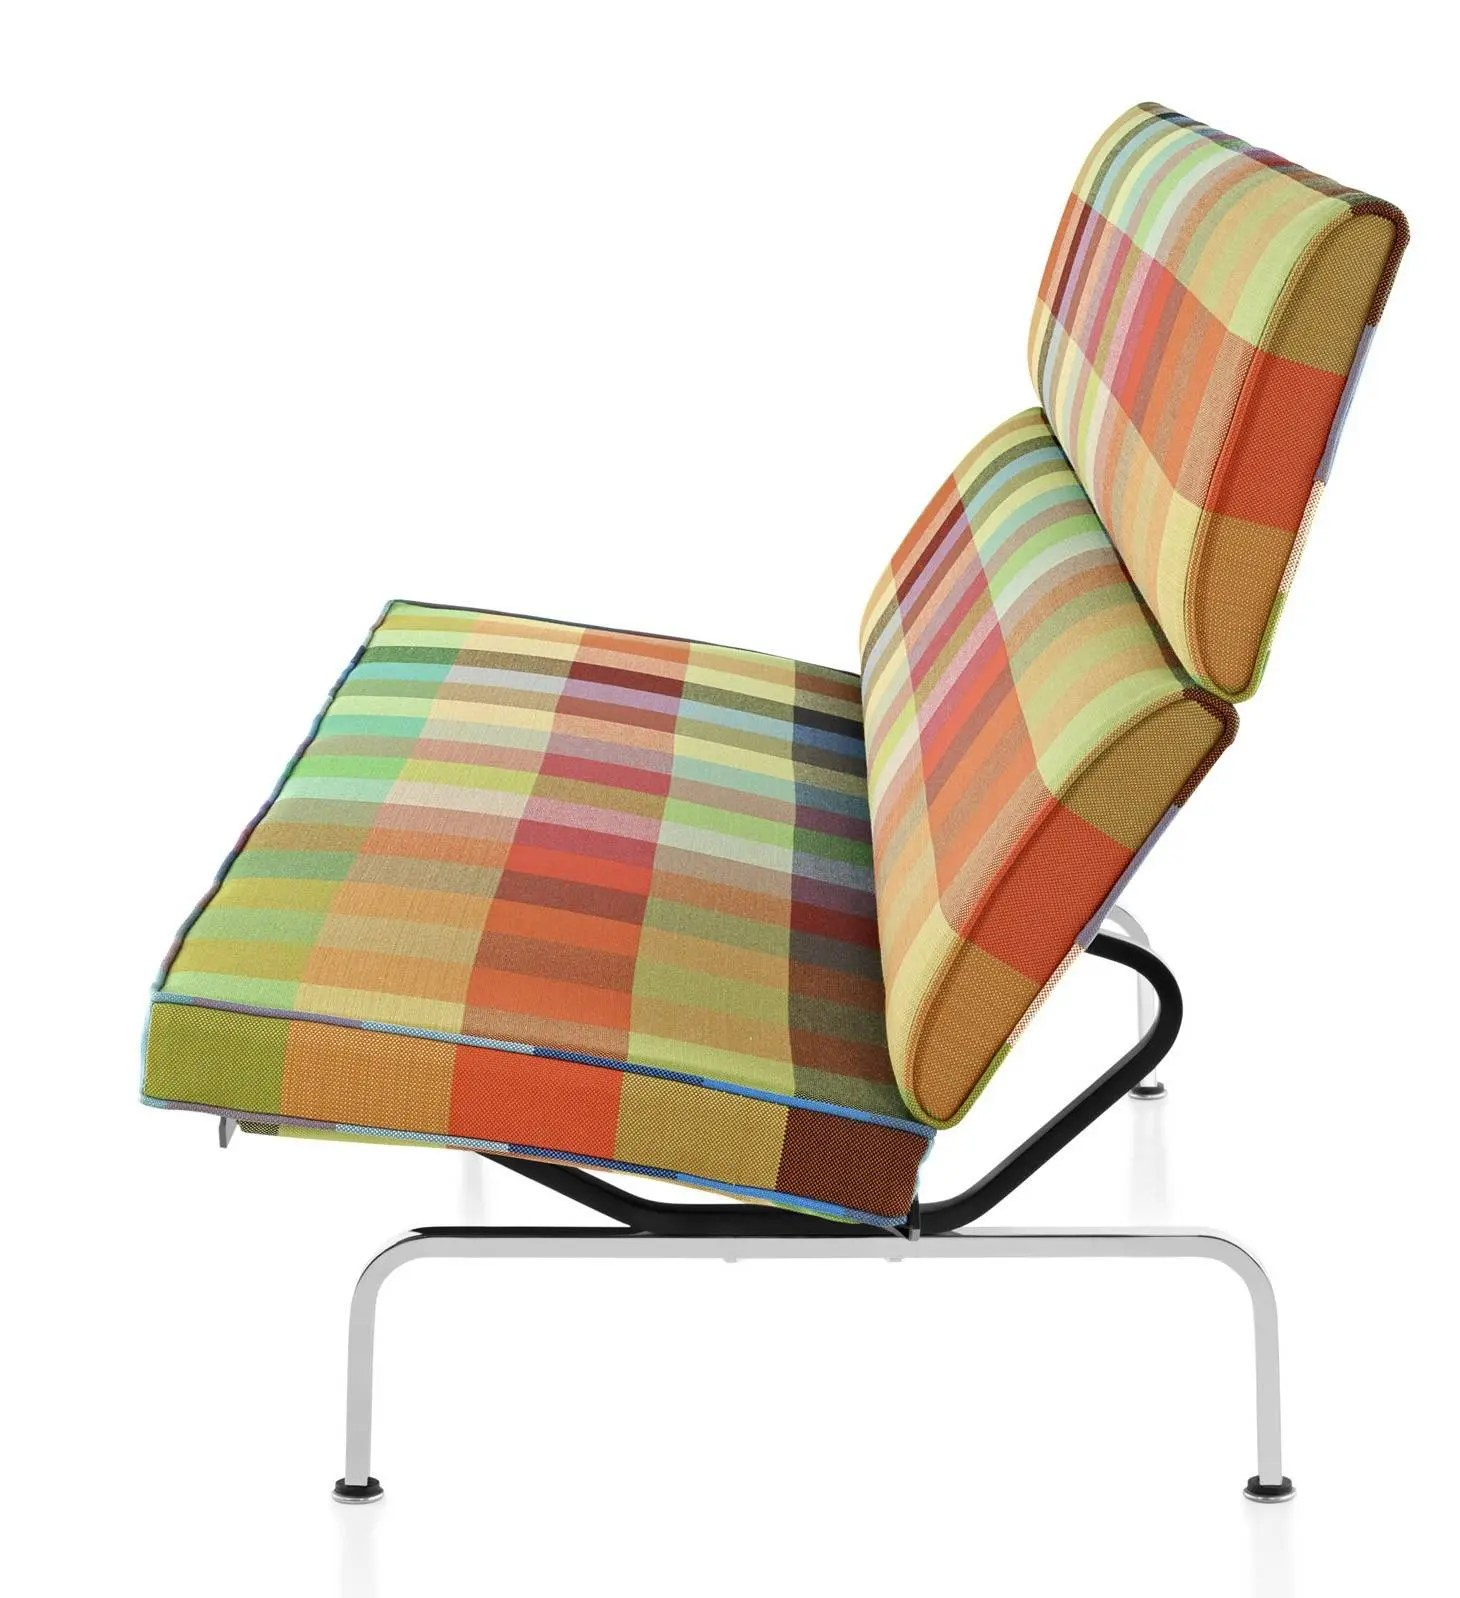 eames sofa compact knockoff hudson side lounge seating